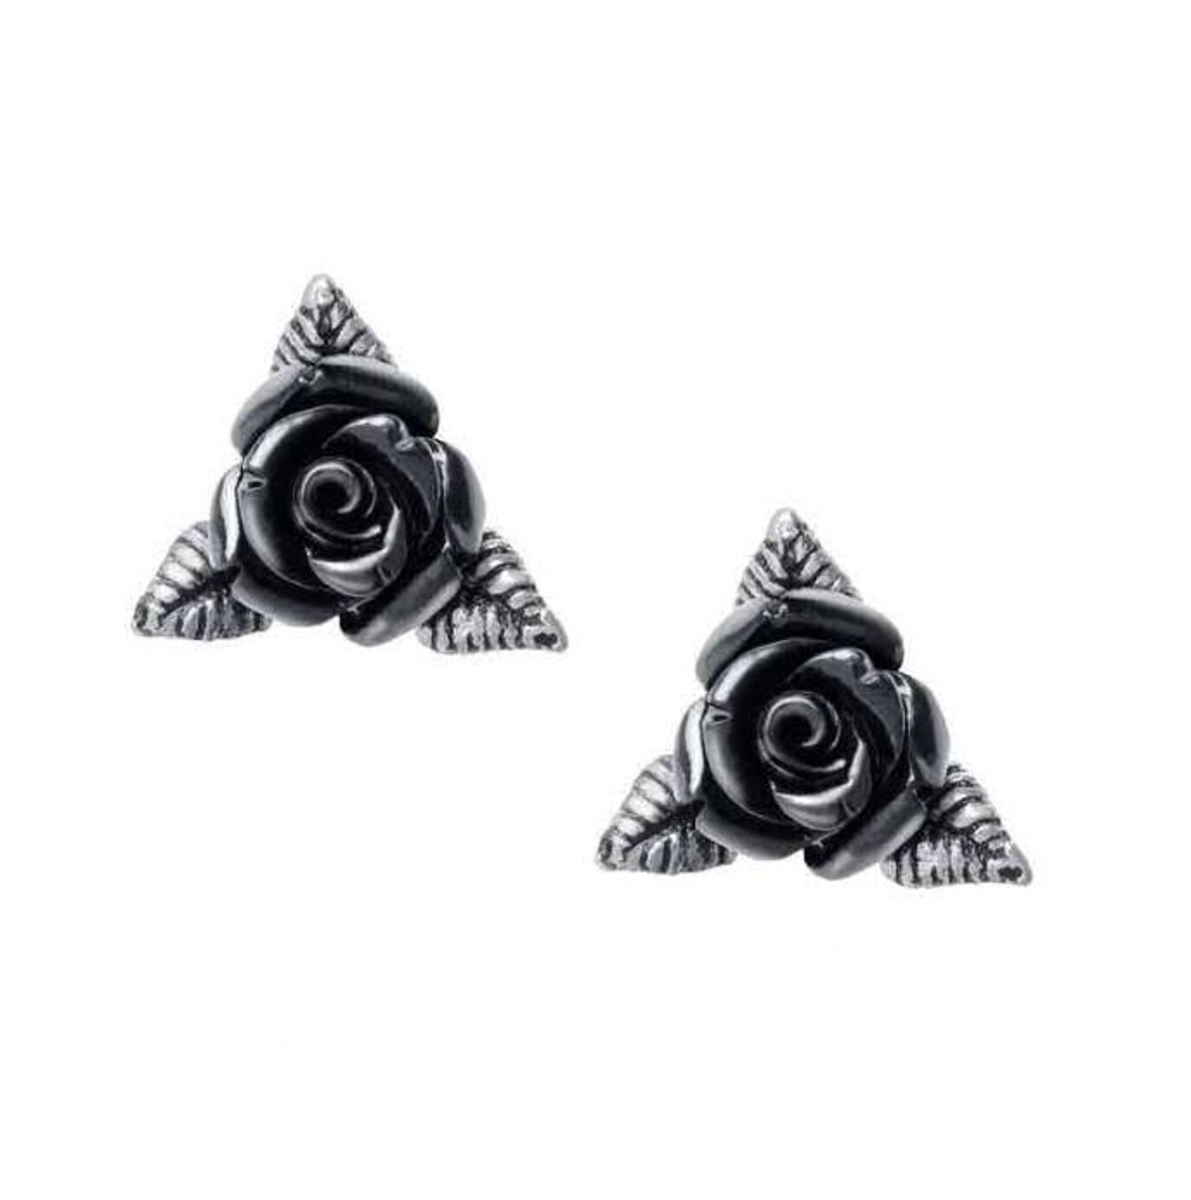 náušnice ALCHEMY GOTHIC - Ring O Roses - Pewter - E447